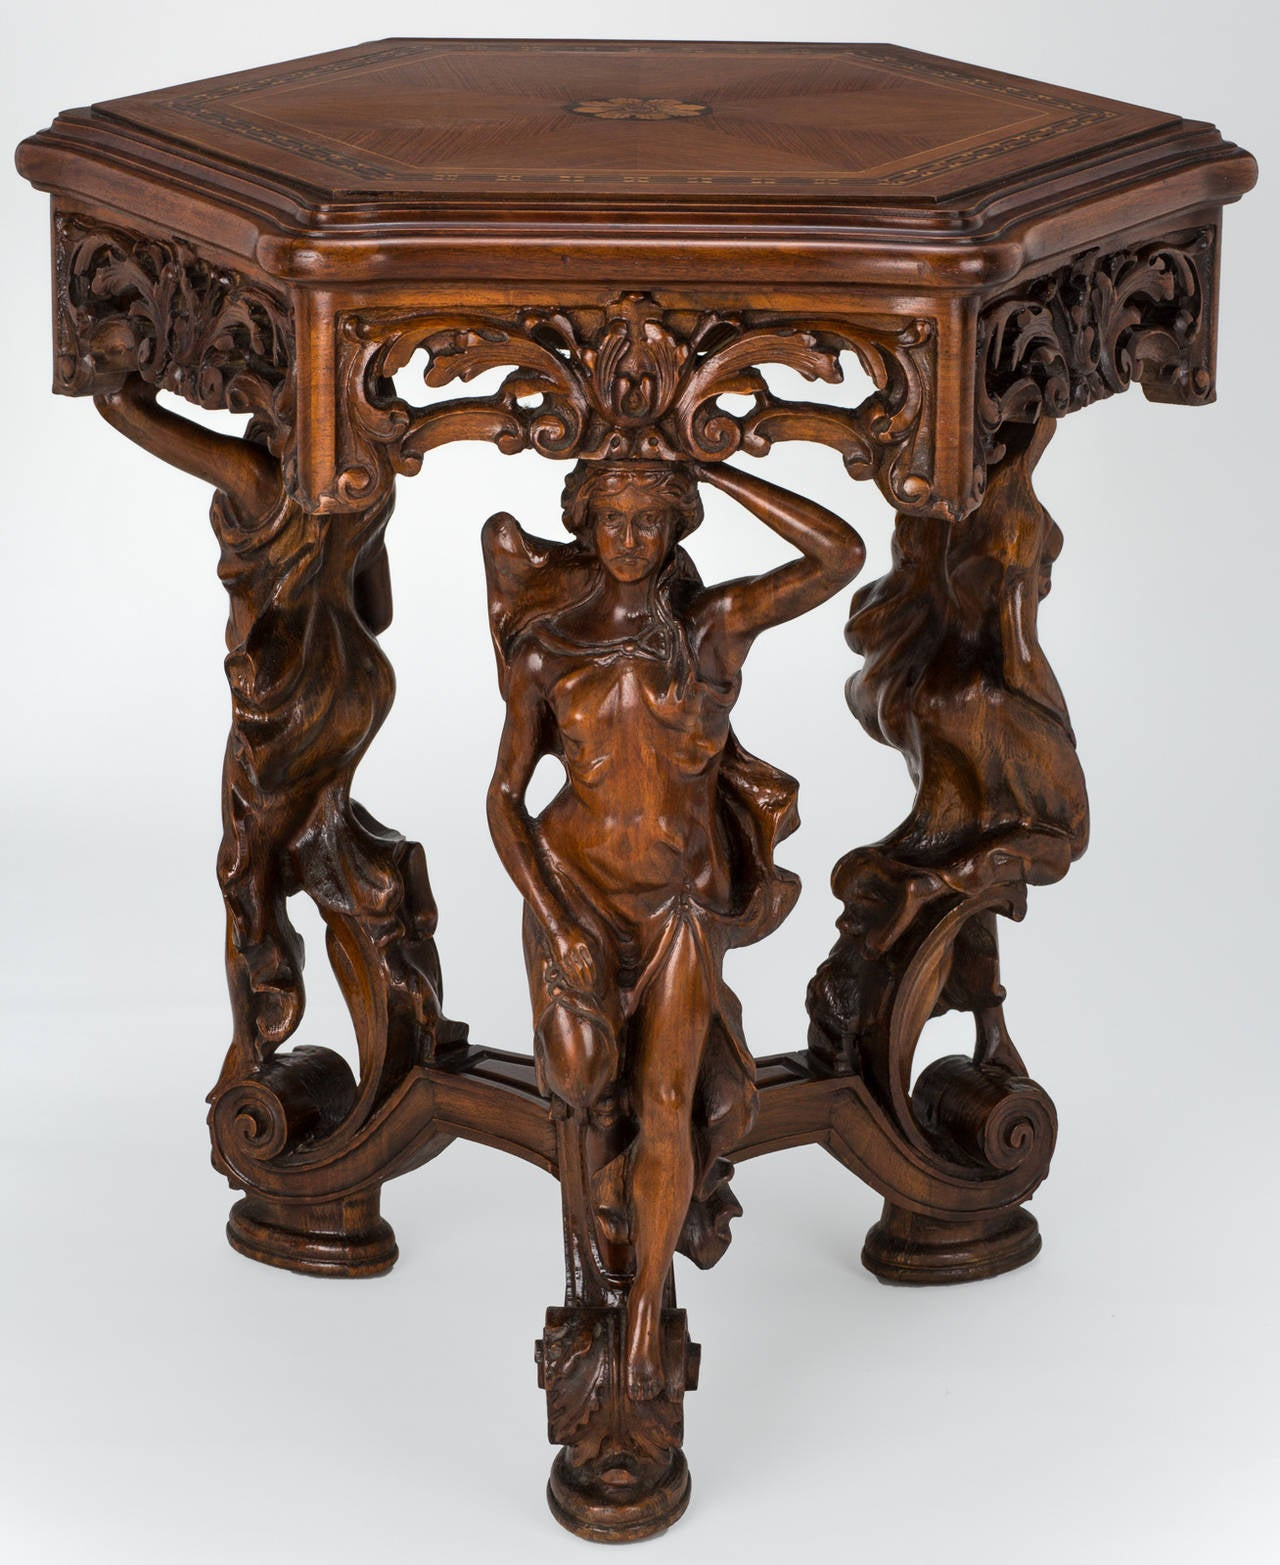 Marquetry Top Art Nouveau Carved Figurine Center Table At